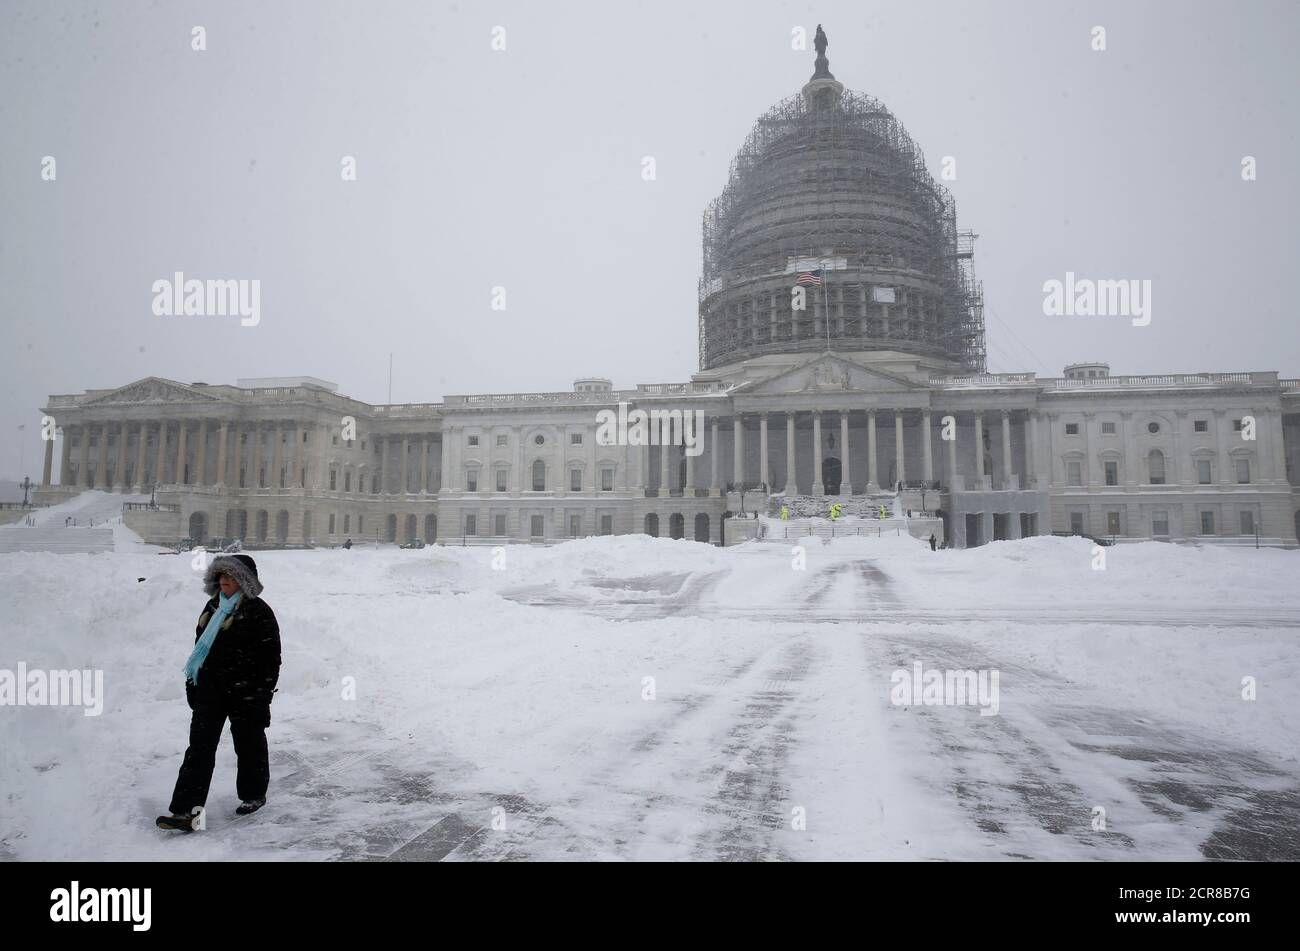 A person walks on the snow-covered grounds of the U.S.Capitol in Washington January 23, 2016. Thick snow covered the Washington, D.C. area on Saturday as a potentially record-breaking blizzard paralyzed road, rail and airline travel on the U.S. East Coast from North Carolina to New York. REUTERS/Jonathan Ernst Stock Photo